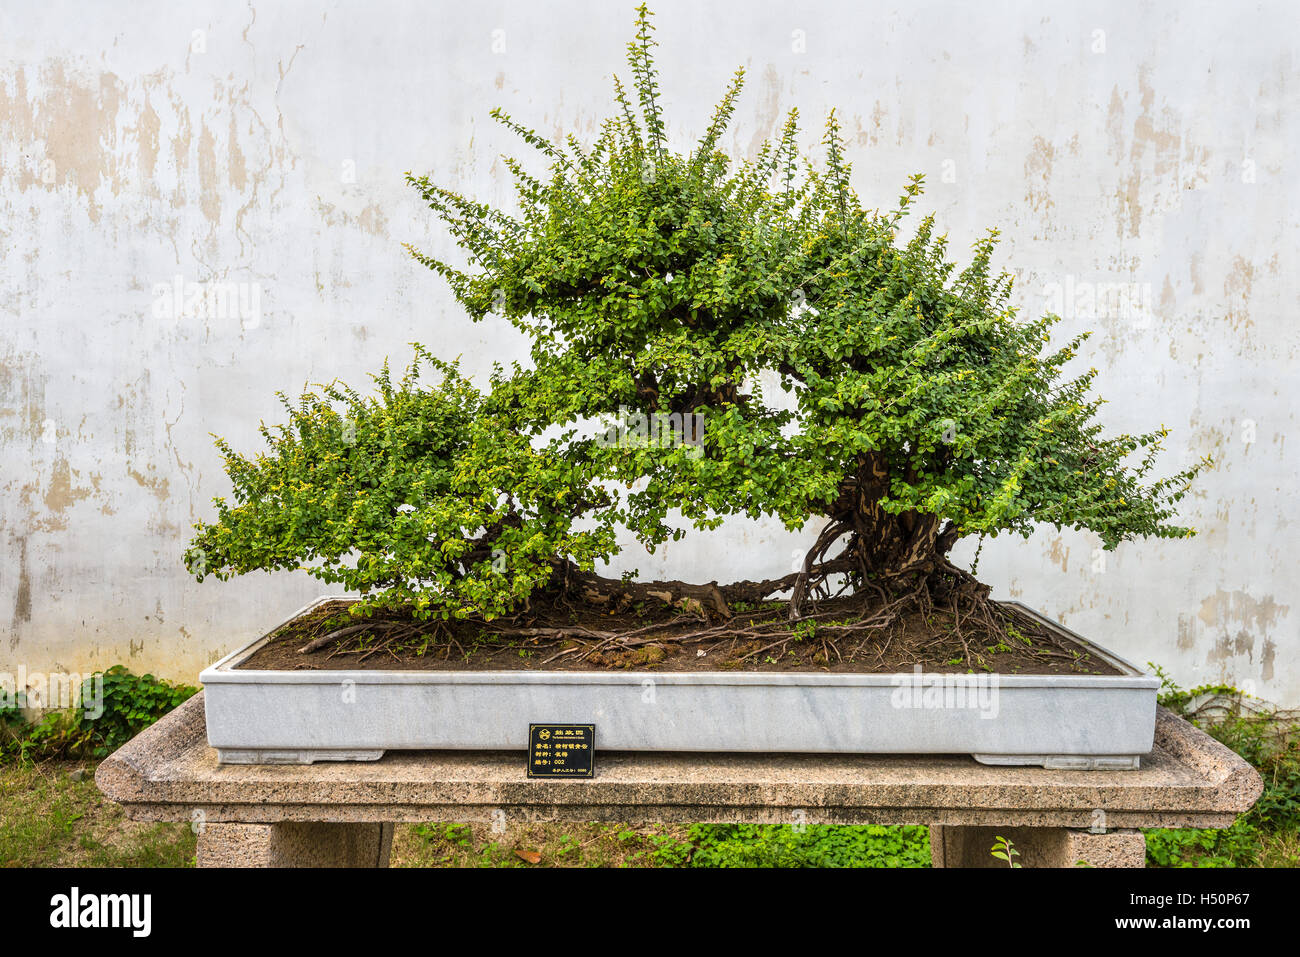 Small Trees In Pot Stock Photos Amp Small Trees In Pot Stock Images